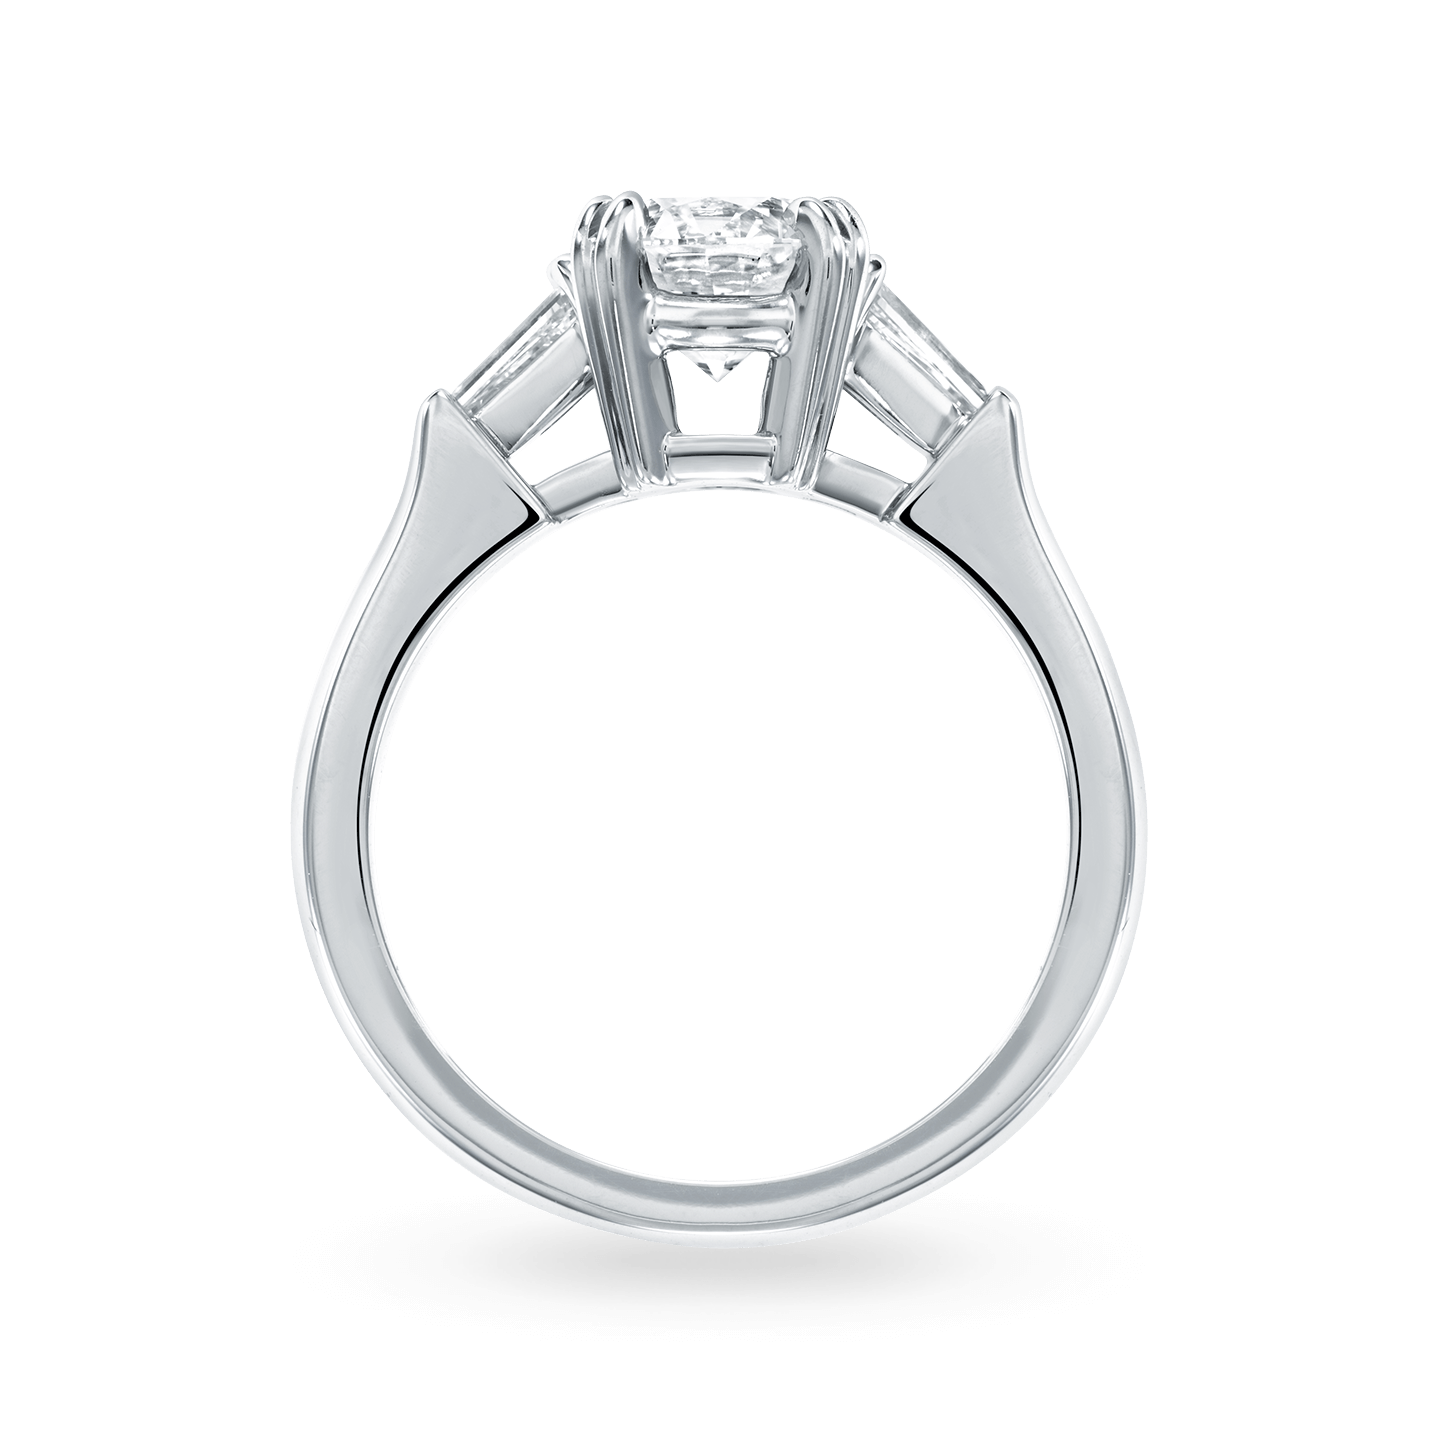 Classic Winston Round Brilliant Engagement Ring with Tapered Baguette Side Stones, Product Image 2